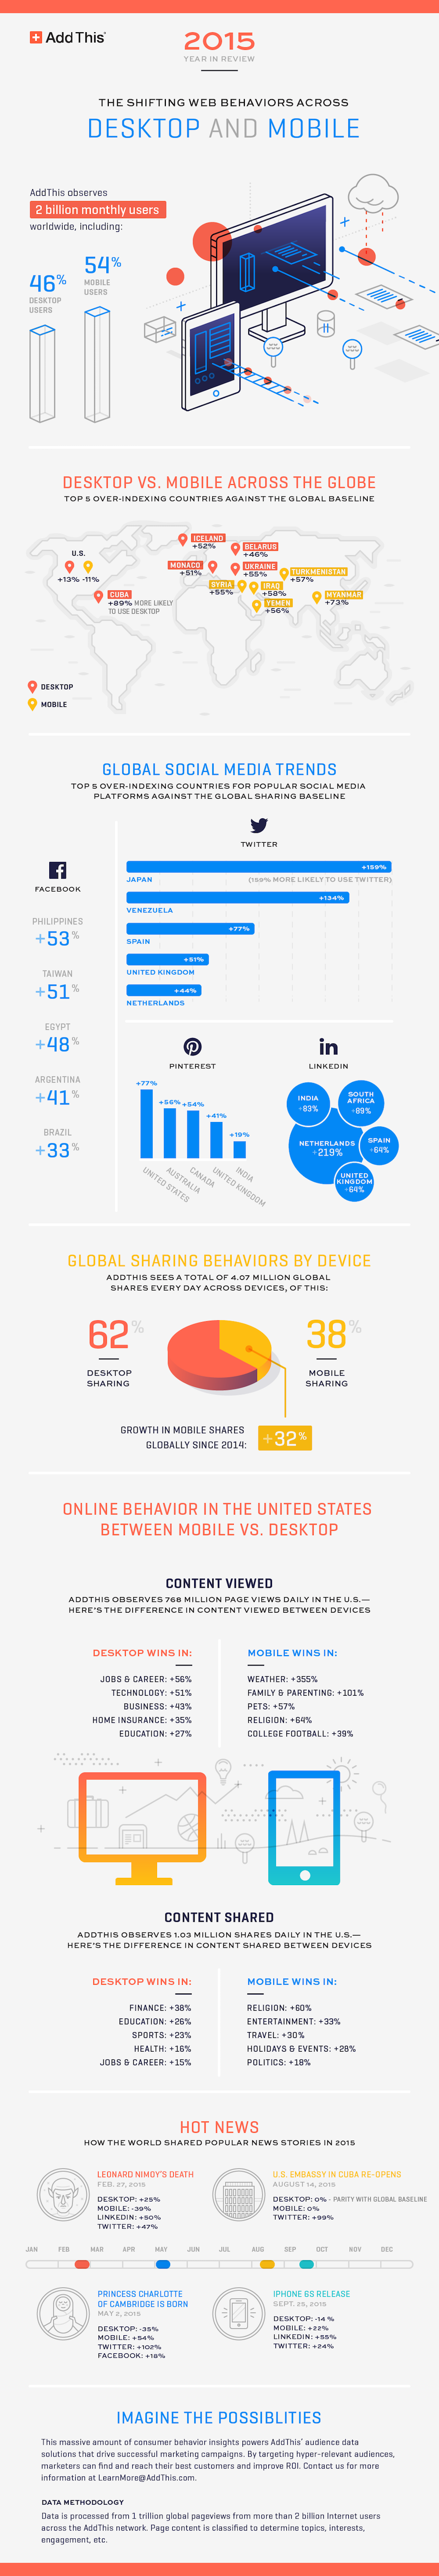 AddThis 2015 EOY Infographic